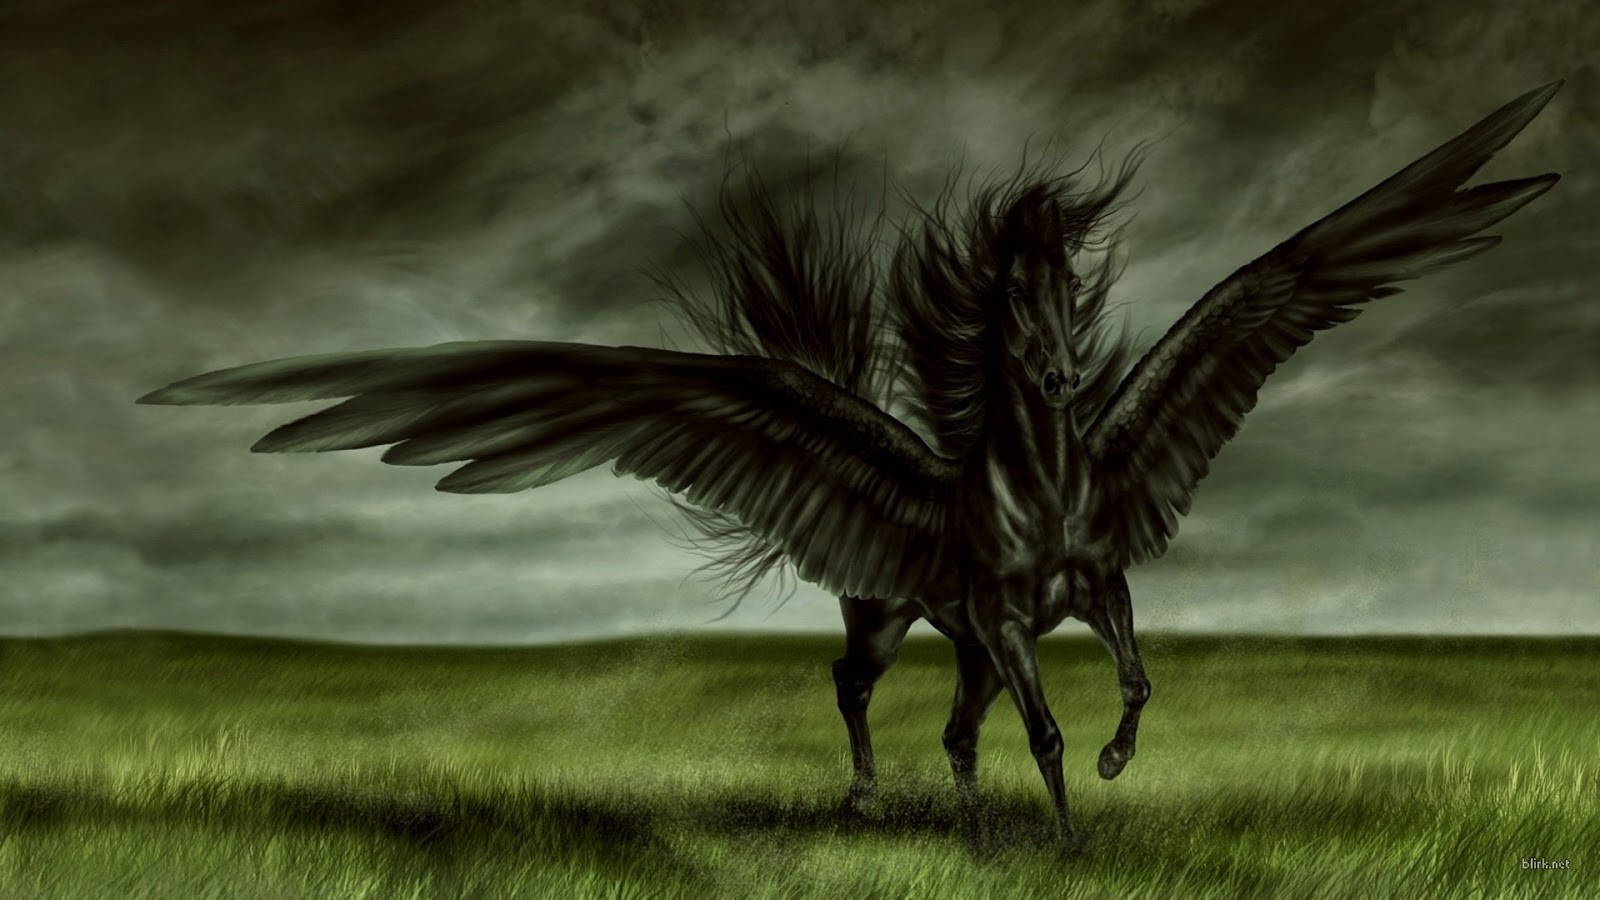 All Wallpapers Black Horse New Best Hd 2013 1600x900